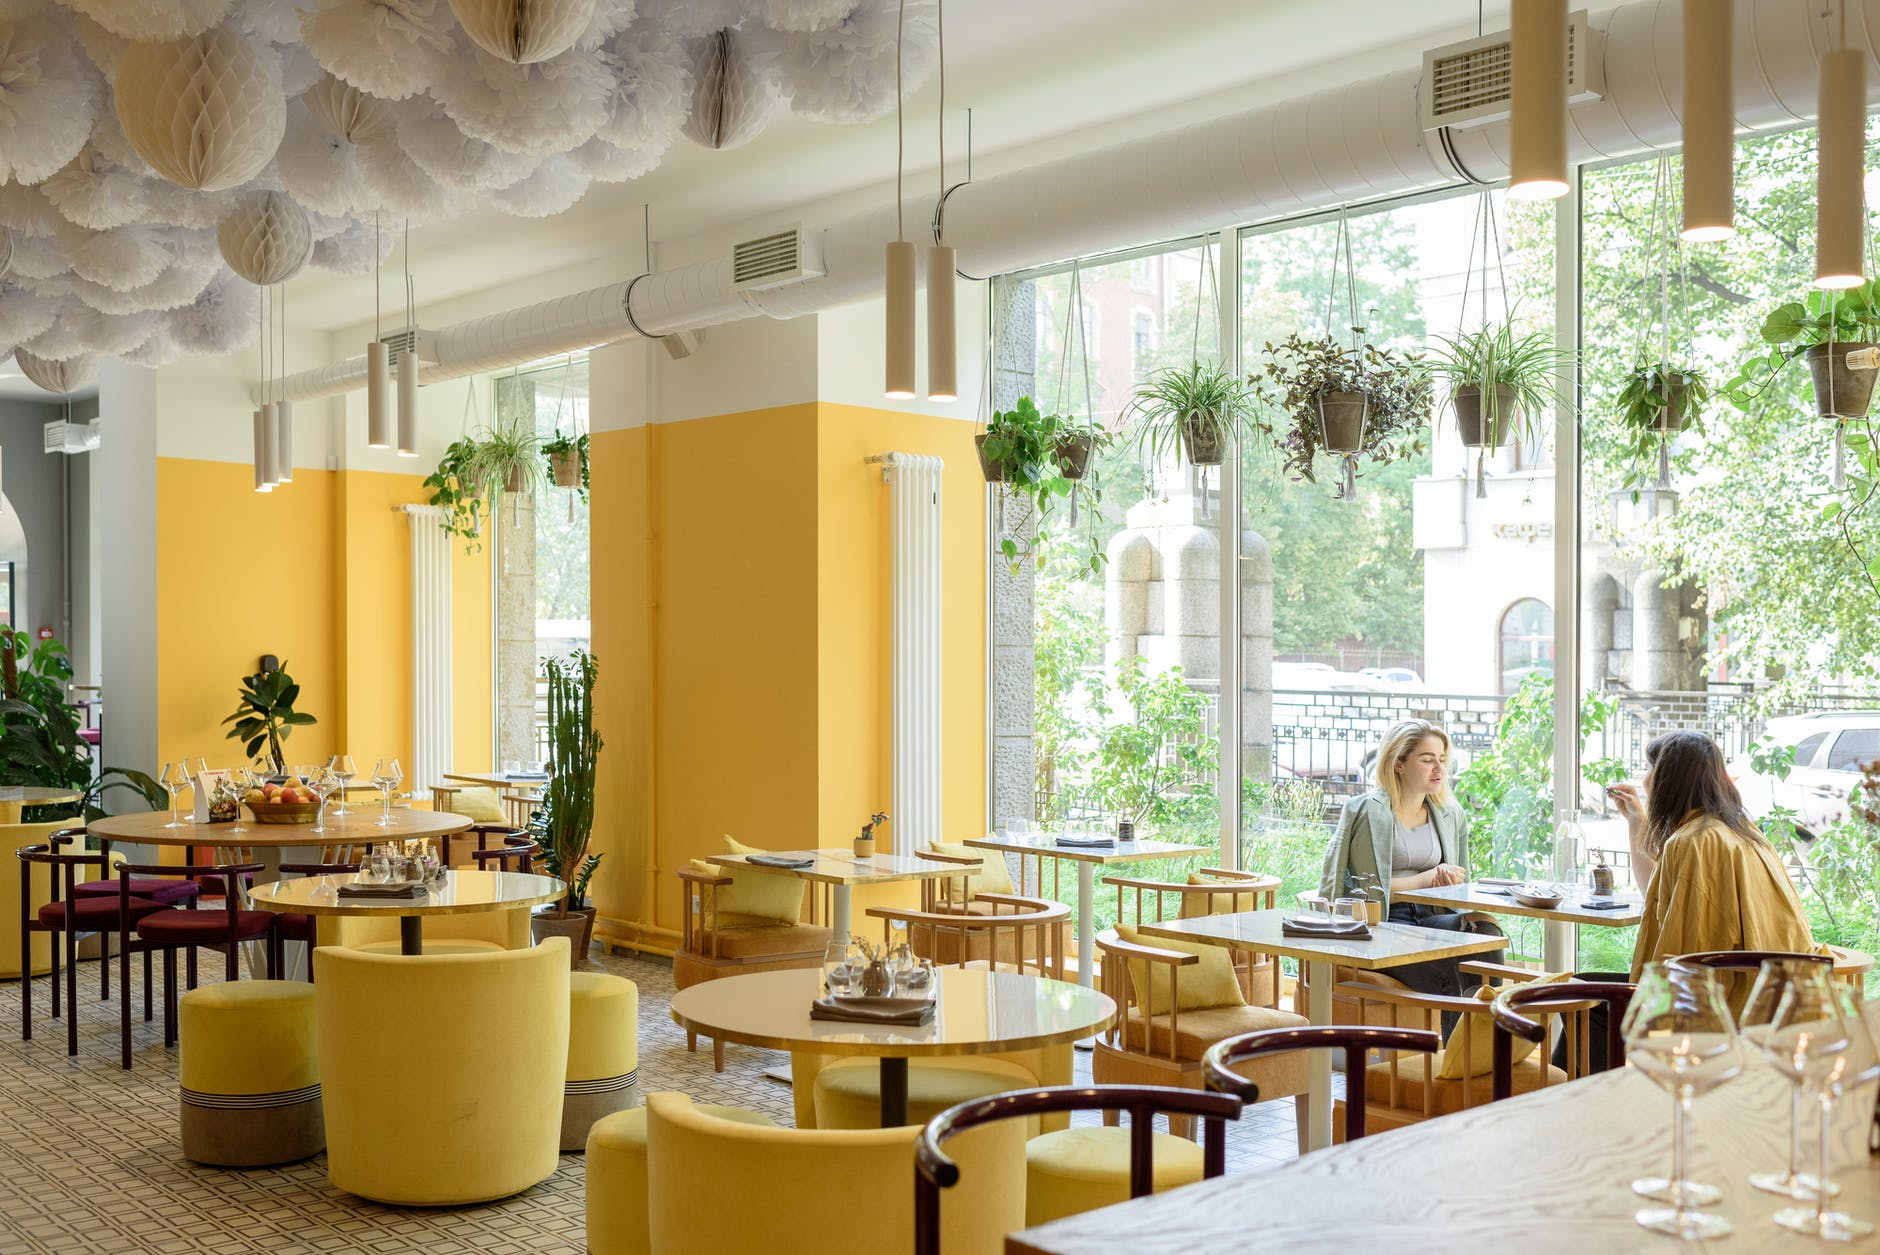 women in modern cafe with stylish bright interior